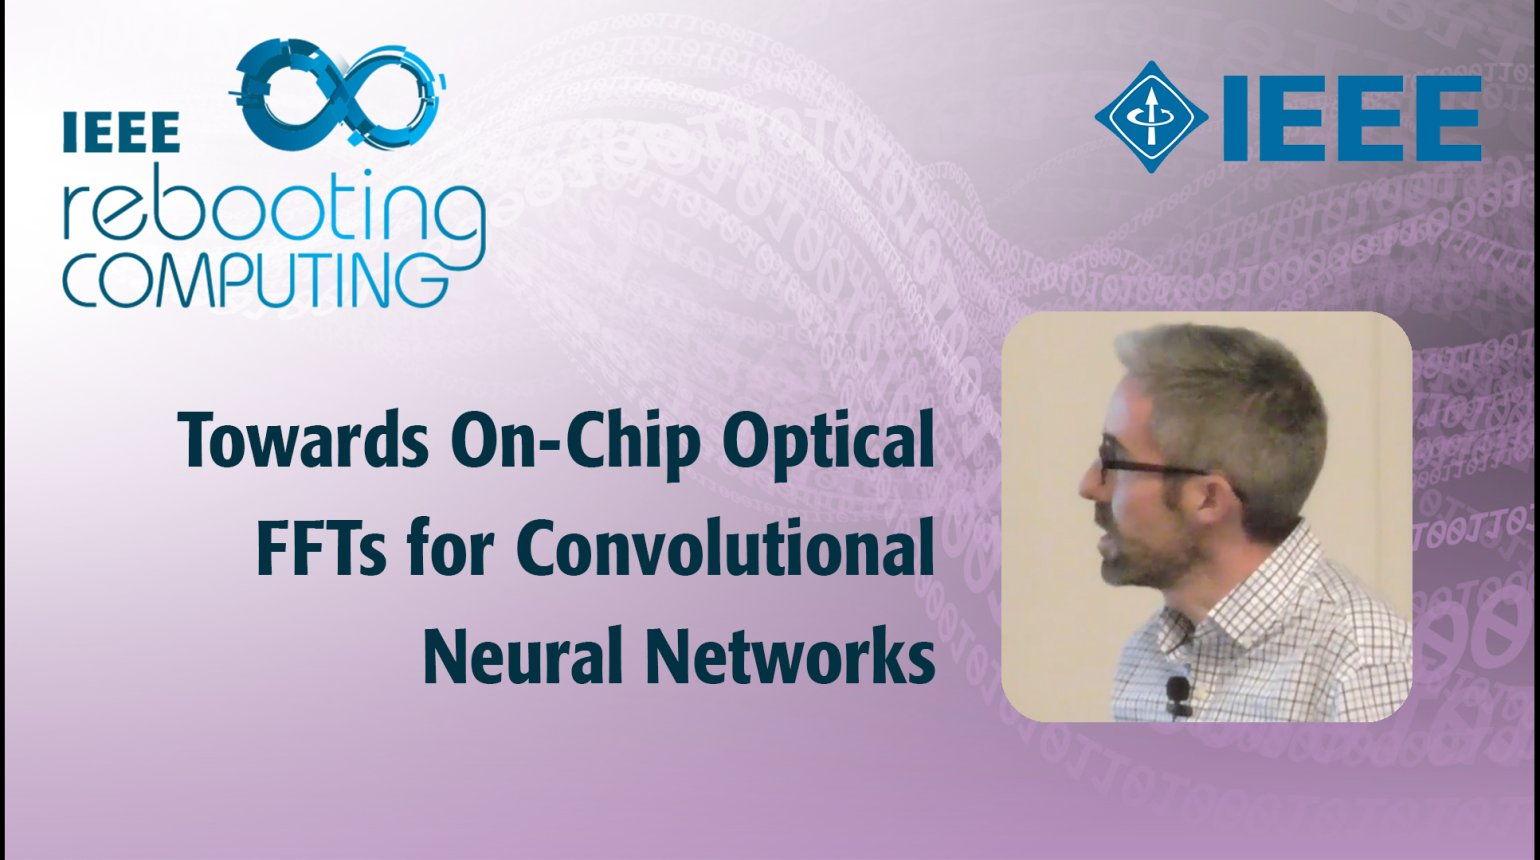 Towards On-Chip Optical FFTs for Convolutional Neural Networks - IEEE Rebooting Computing 2017